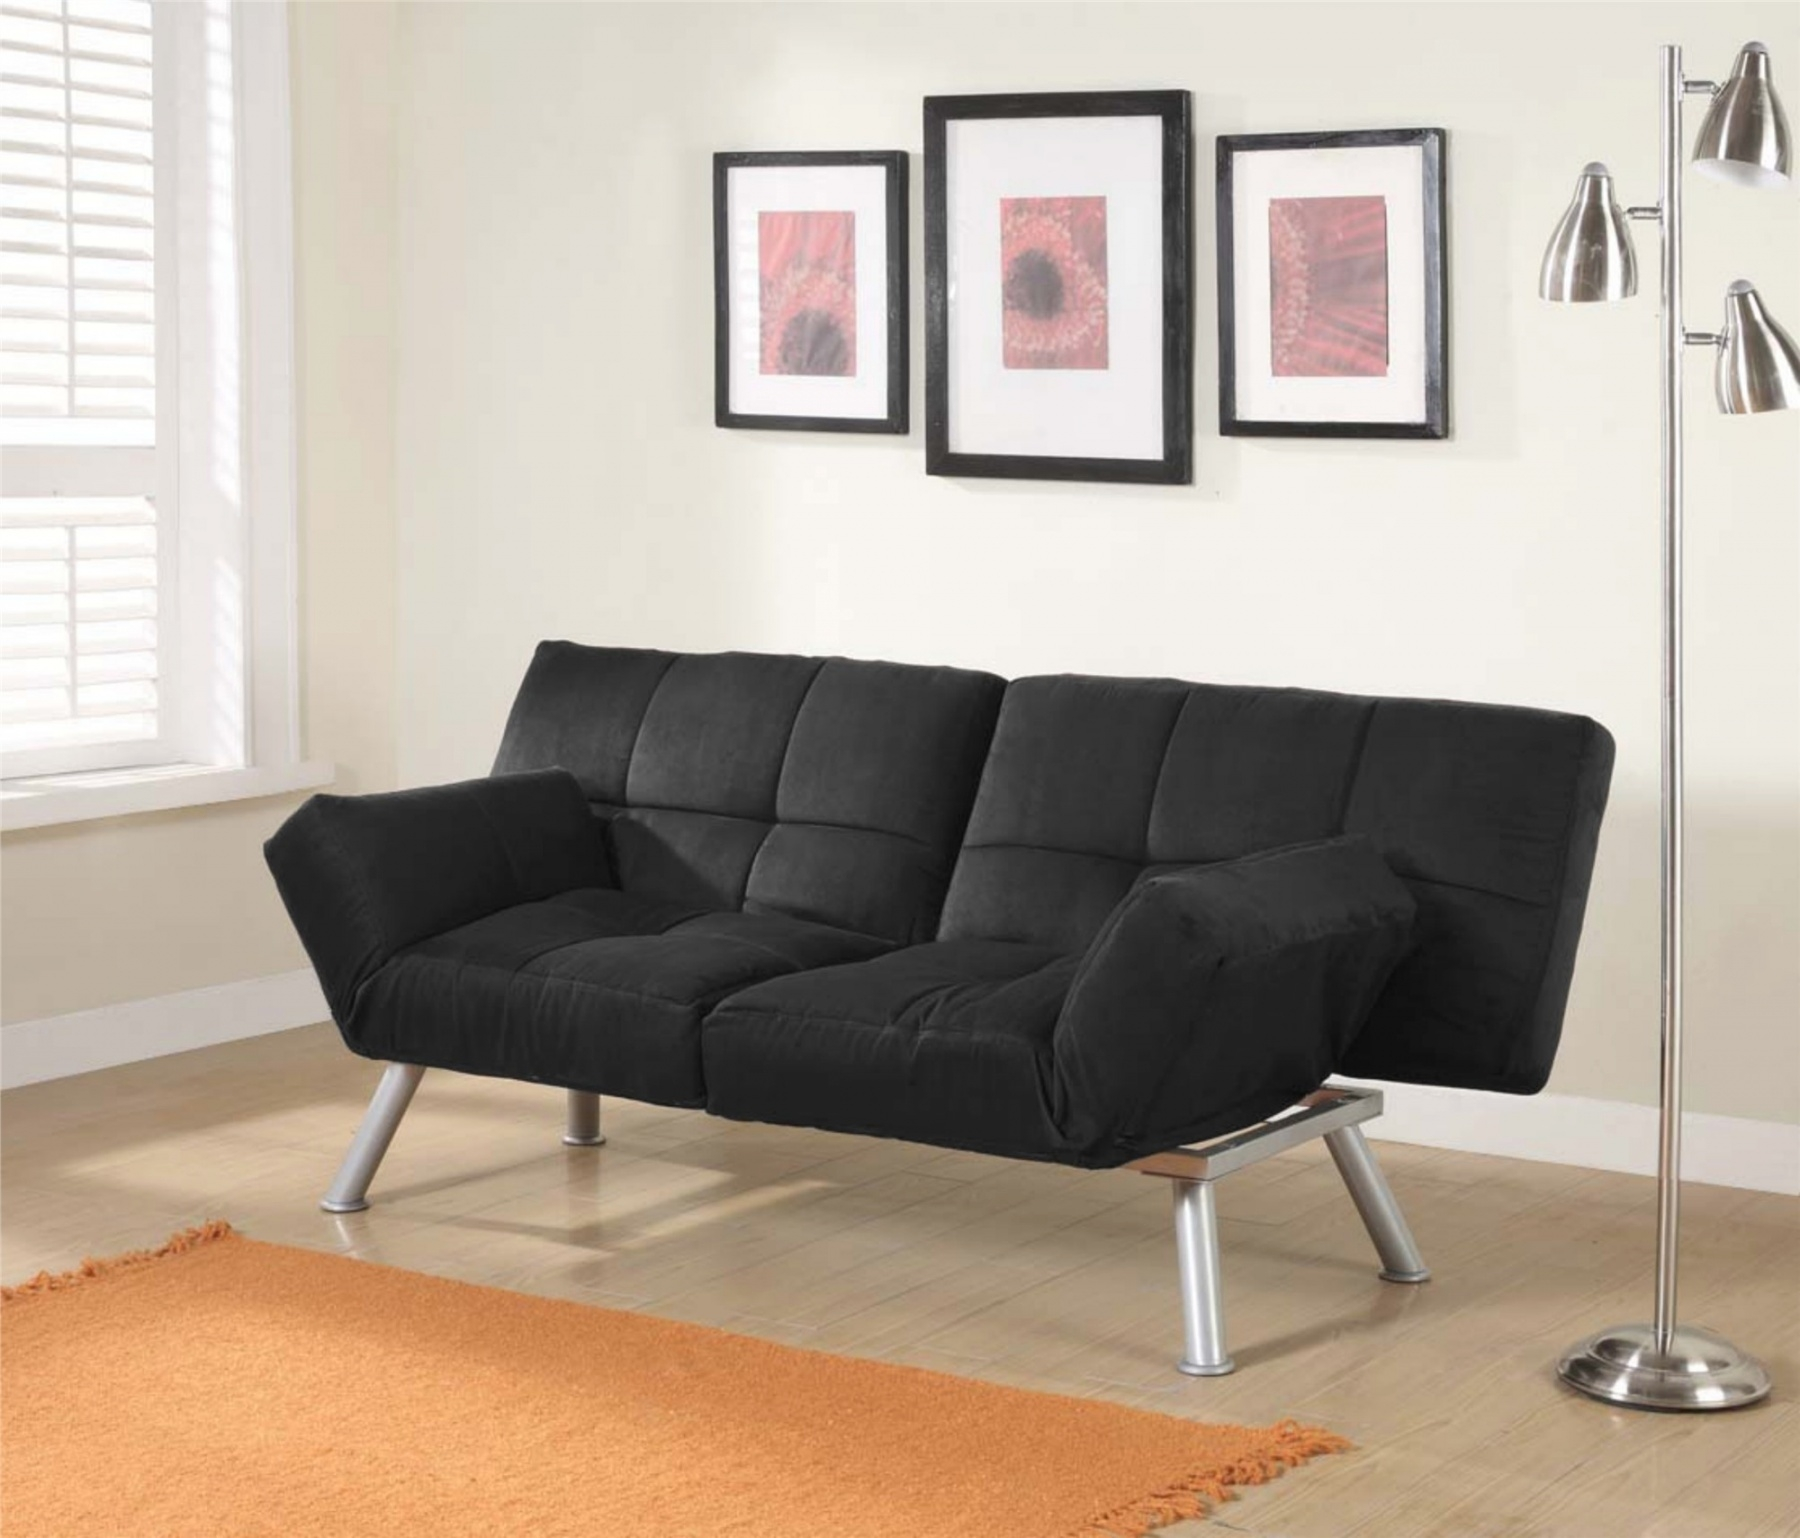 Image of: Futon Chairs Furniture